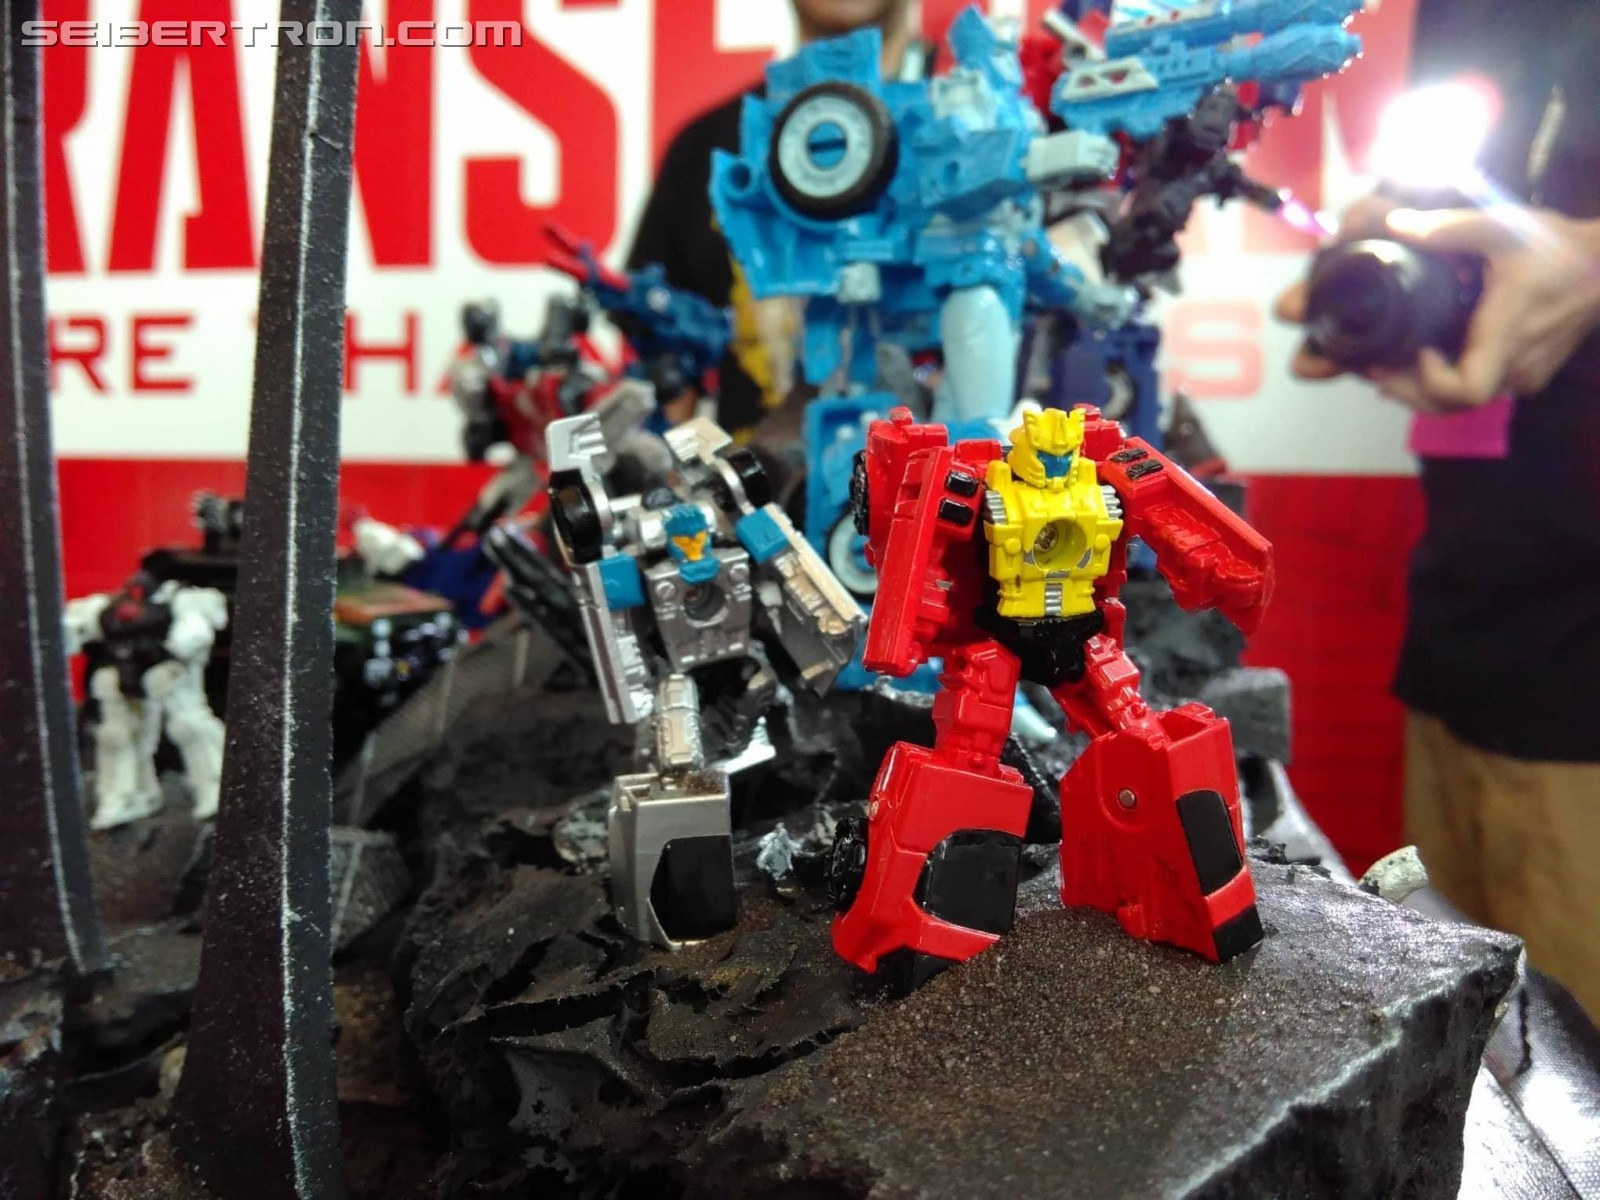 Transformers News: War for Cybertron: Siege Toys on Display at SDCC 2018 with Ultra Magnus, Hound, Ironhide and More